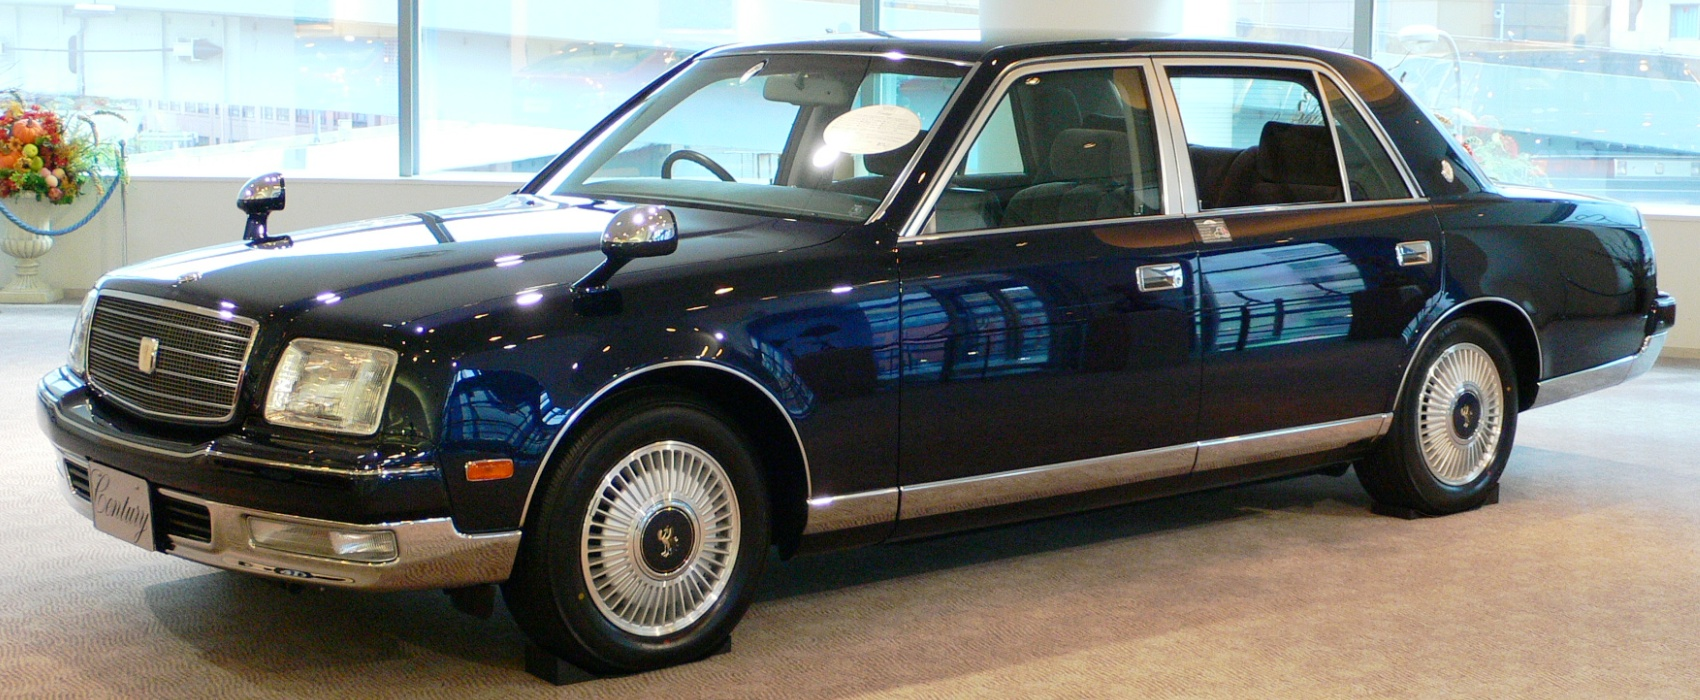 A Step to the New Century With Toyota Century #1